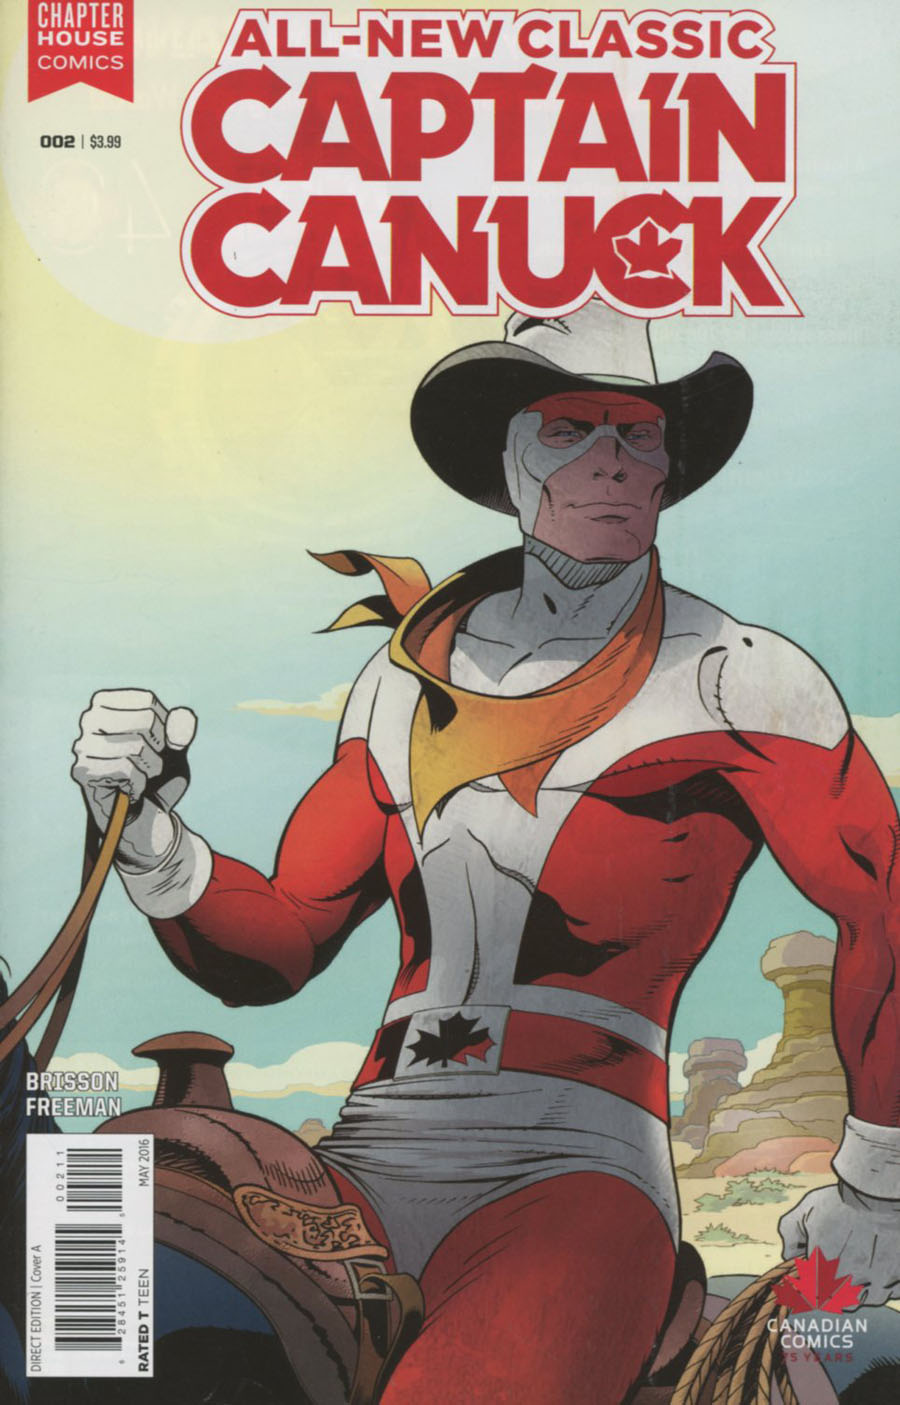 All-New Classic Captain Canuck #2 Cover A Regular George Freeman Cover